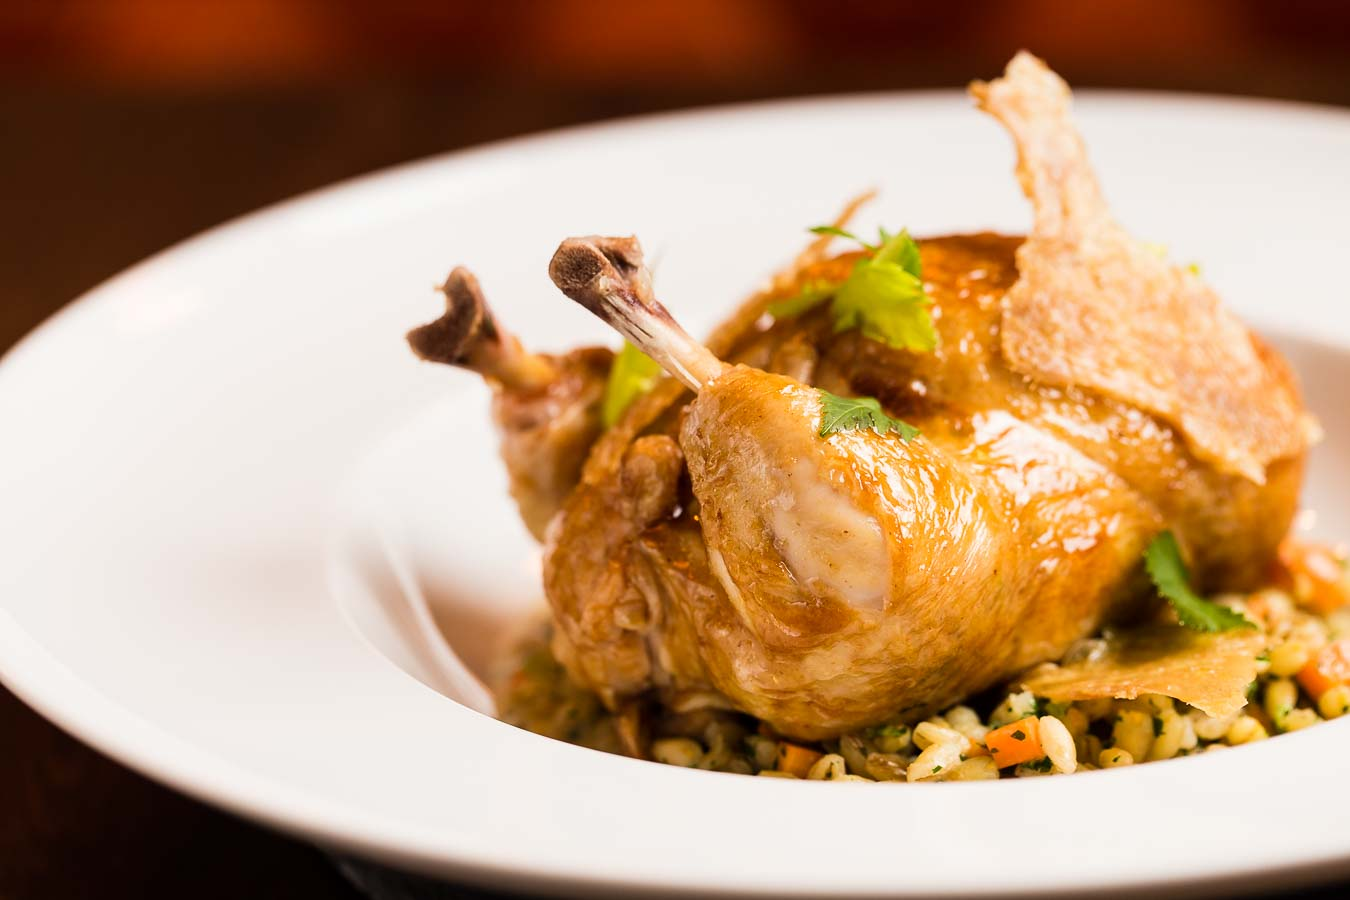 A golden, roasted poussin sitting on a bed of wild rice, all in a white, wide rimmed bowl